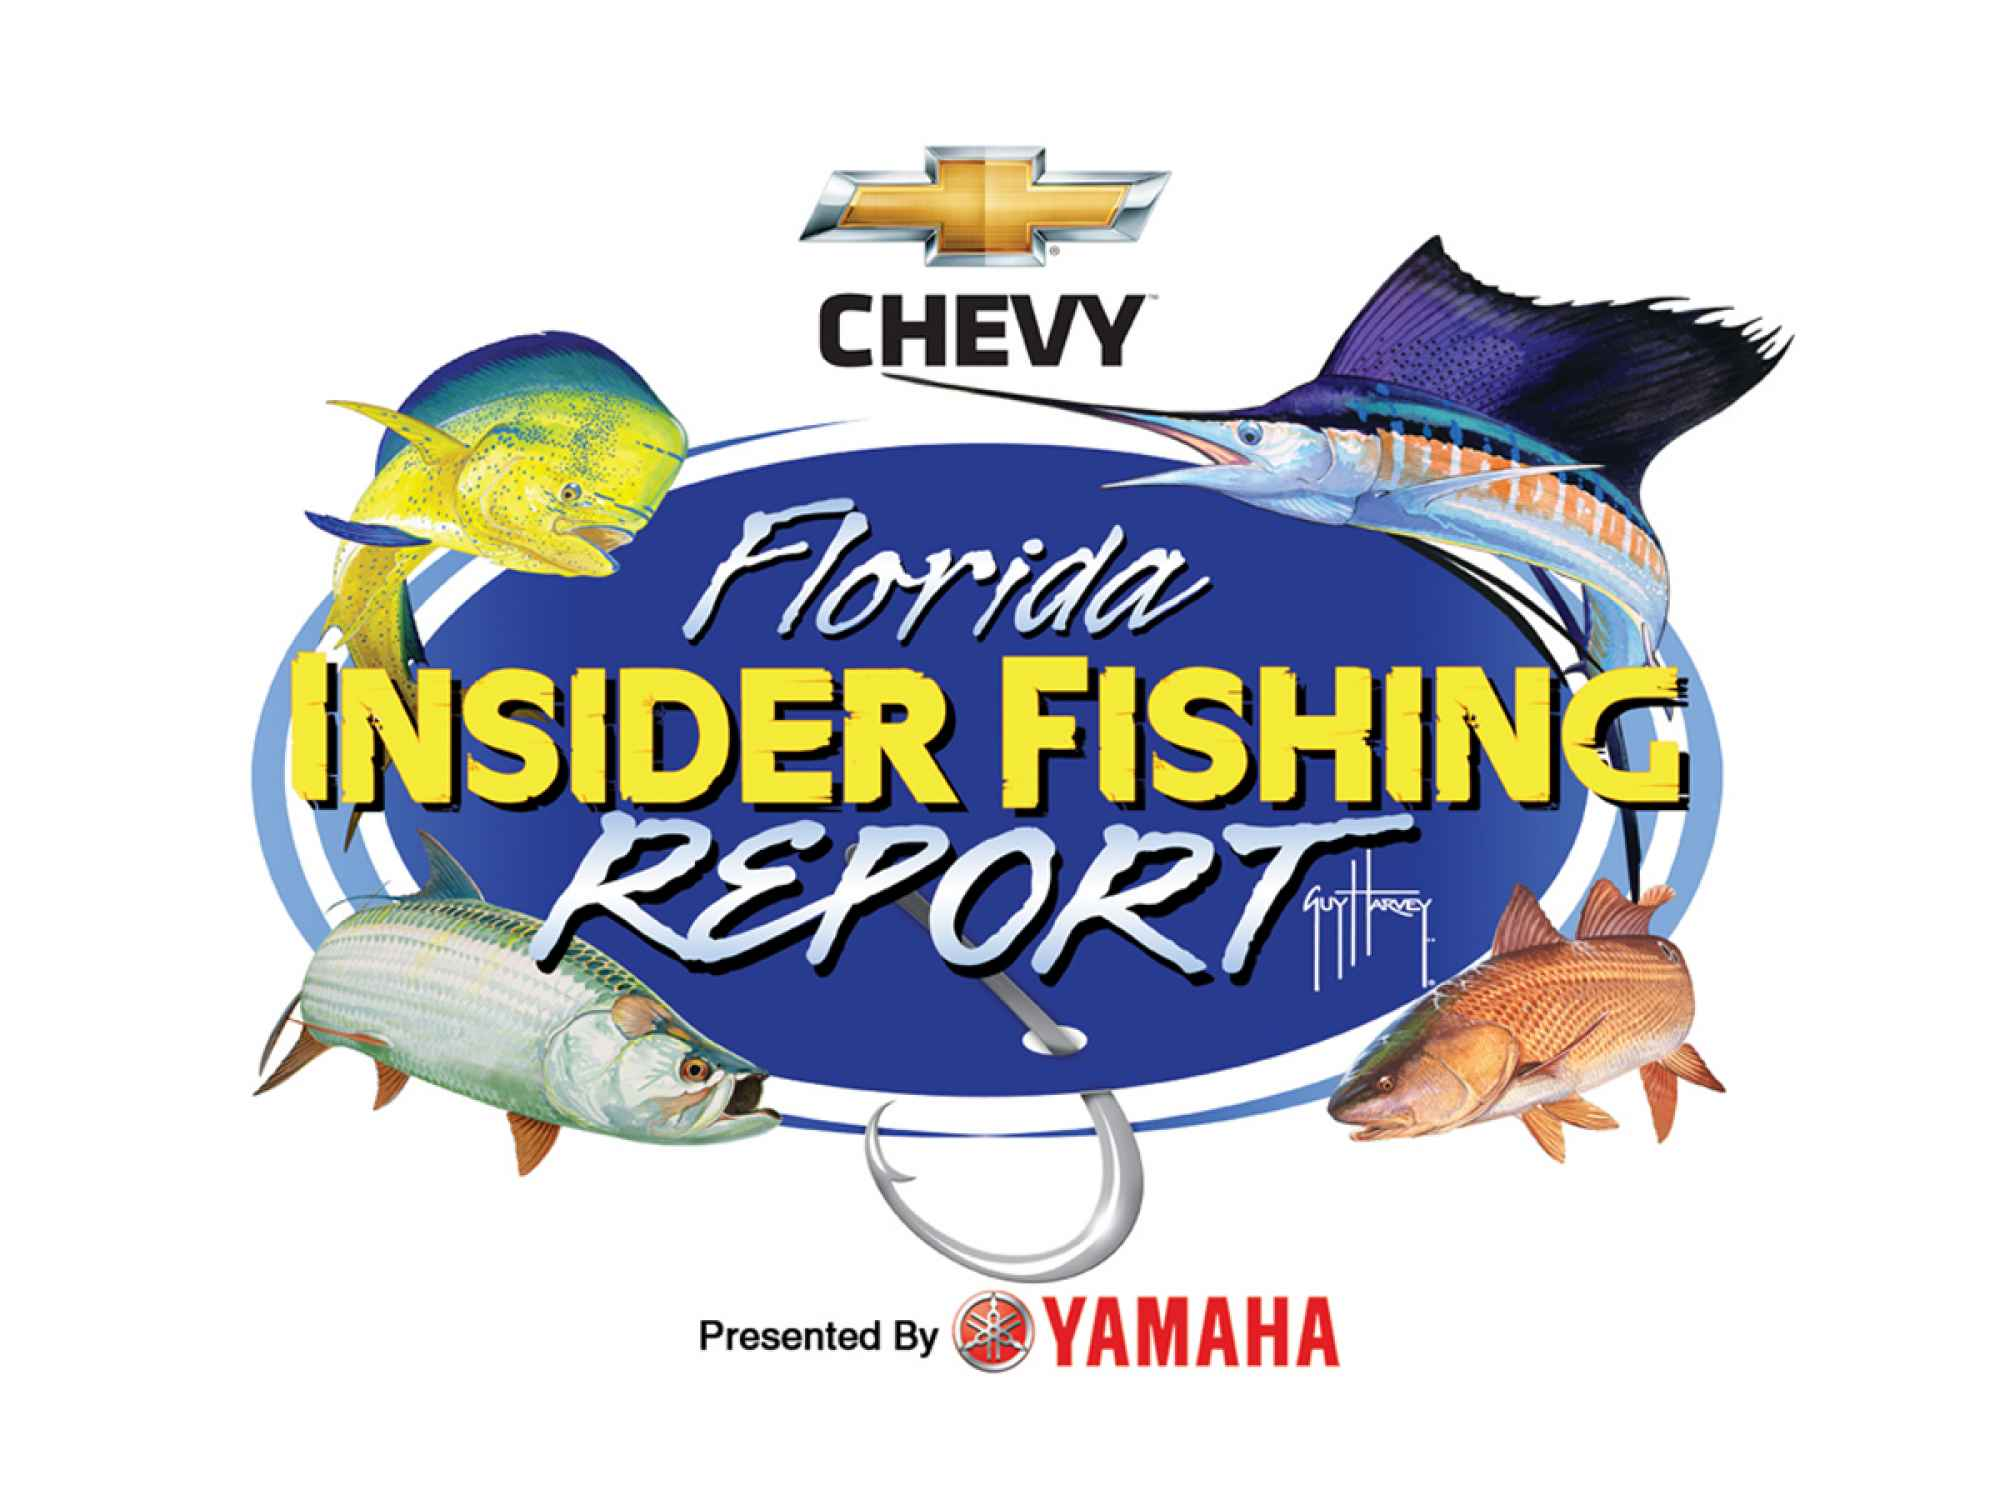 chevy florida insider fishing report jim ross